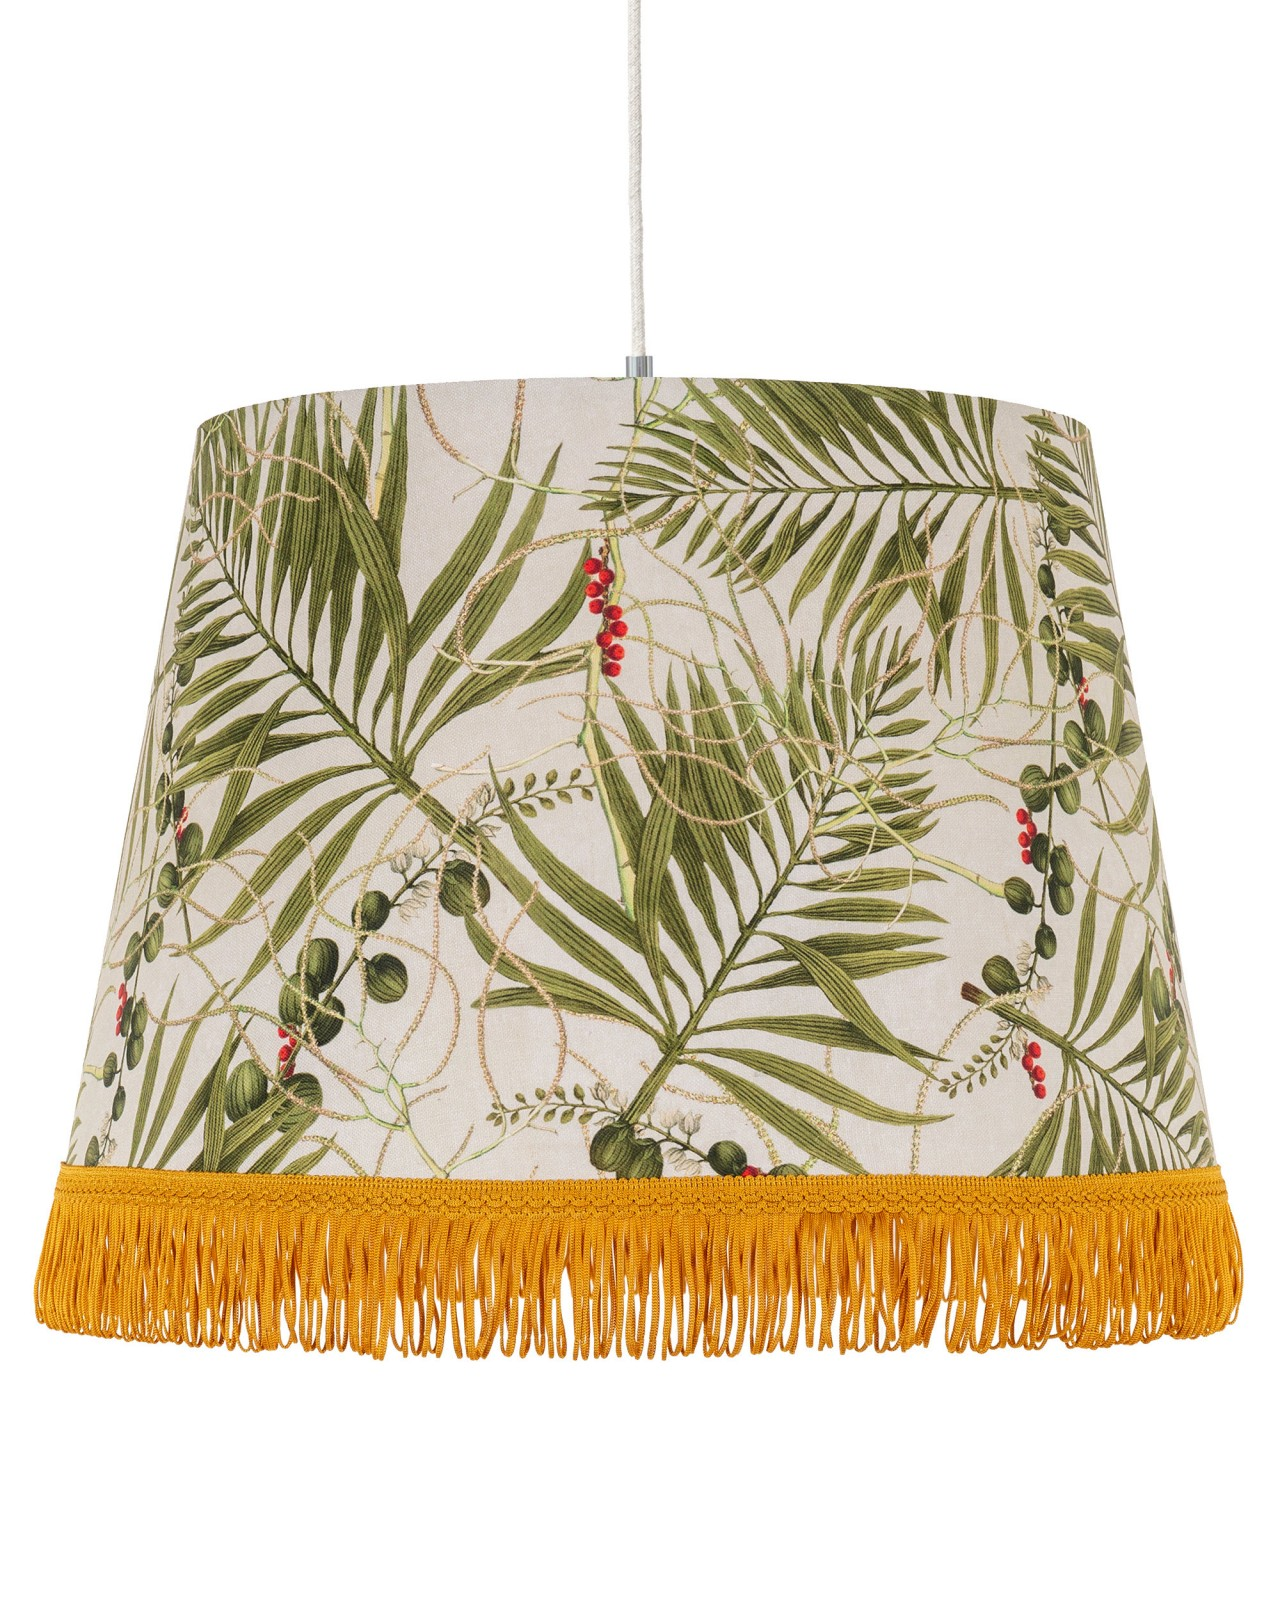 TROPICAL GARDEN Pendant Lamp